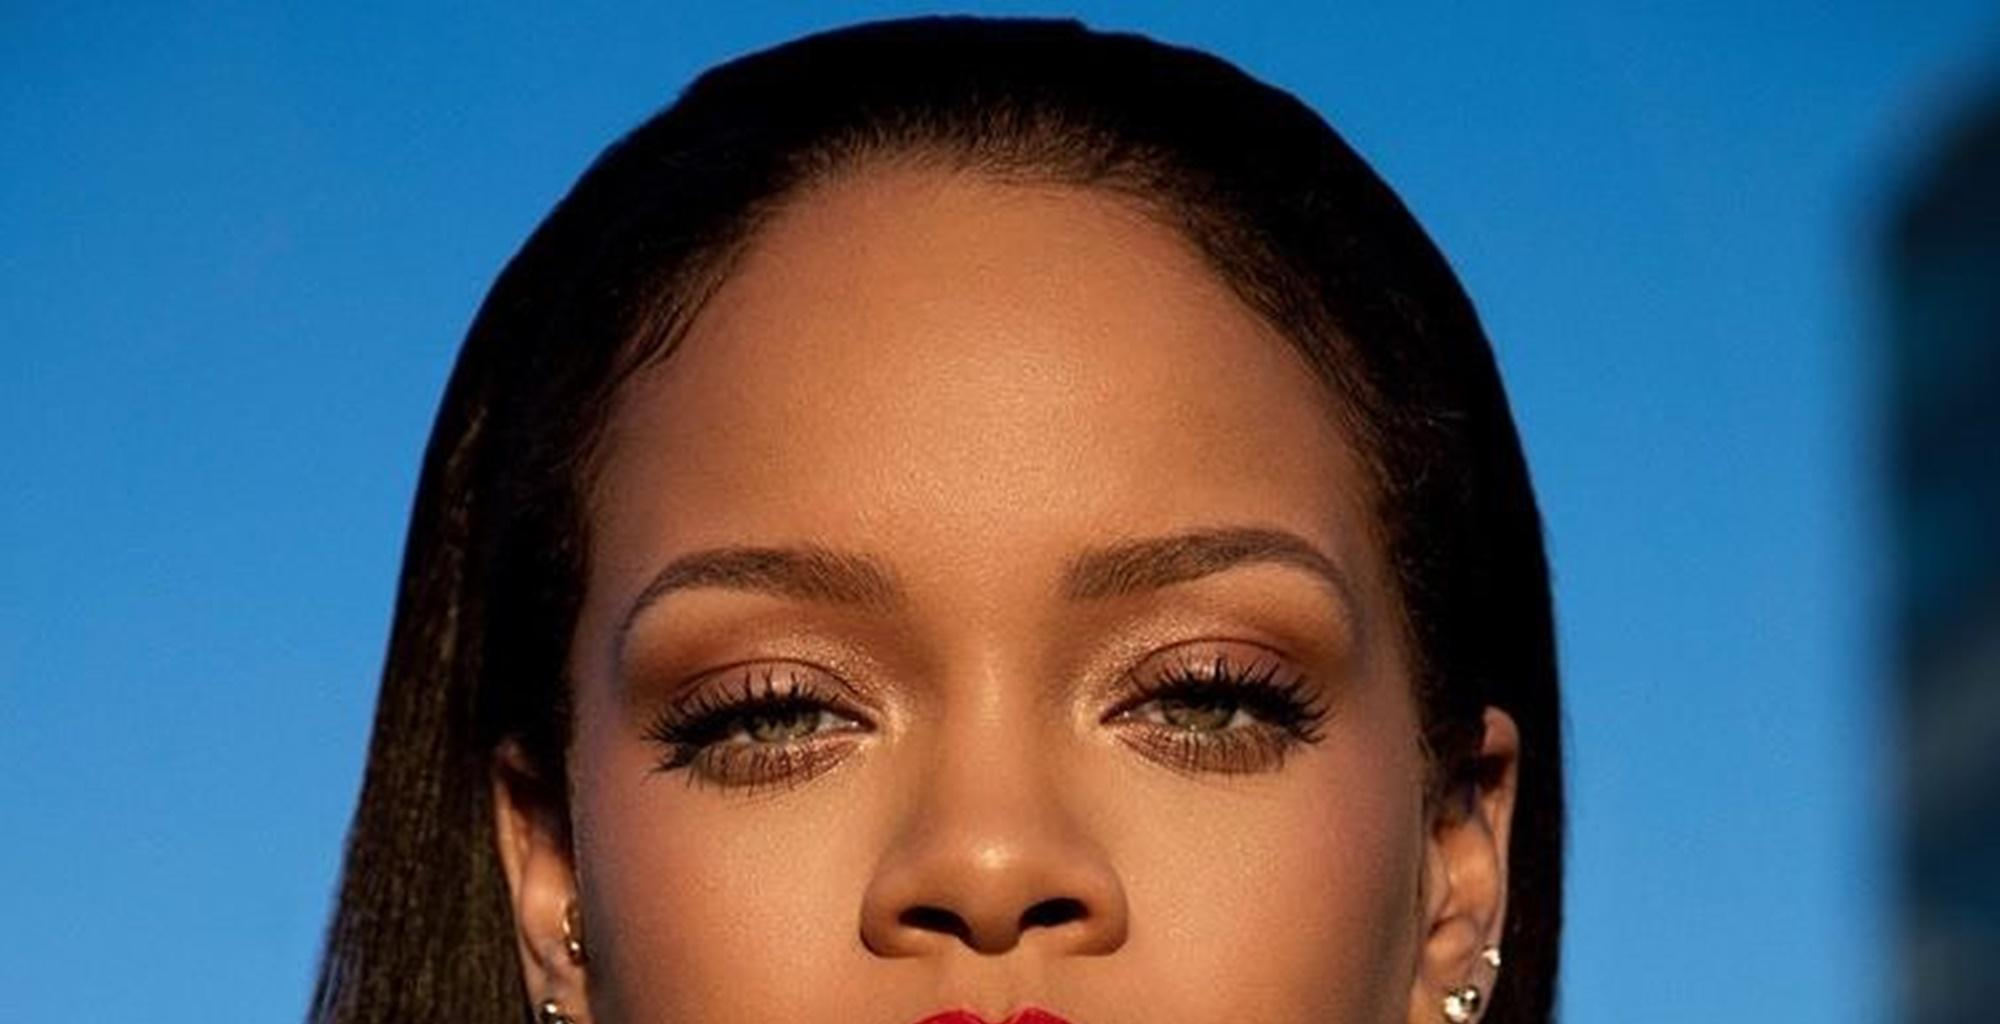 Rihanna Gives Fans An Eyeful While Leaving Music Video Shoot -- The New Album Seems Really Close